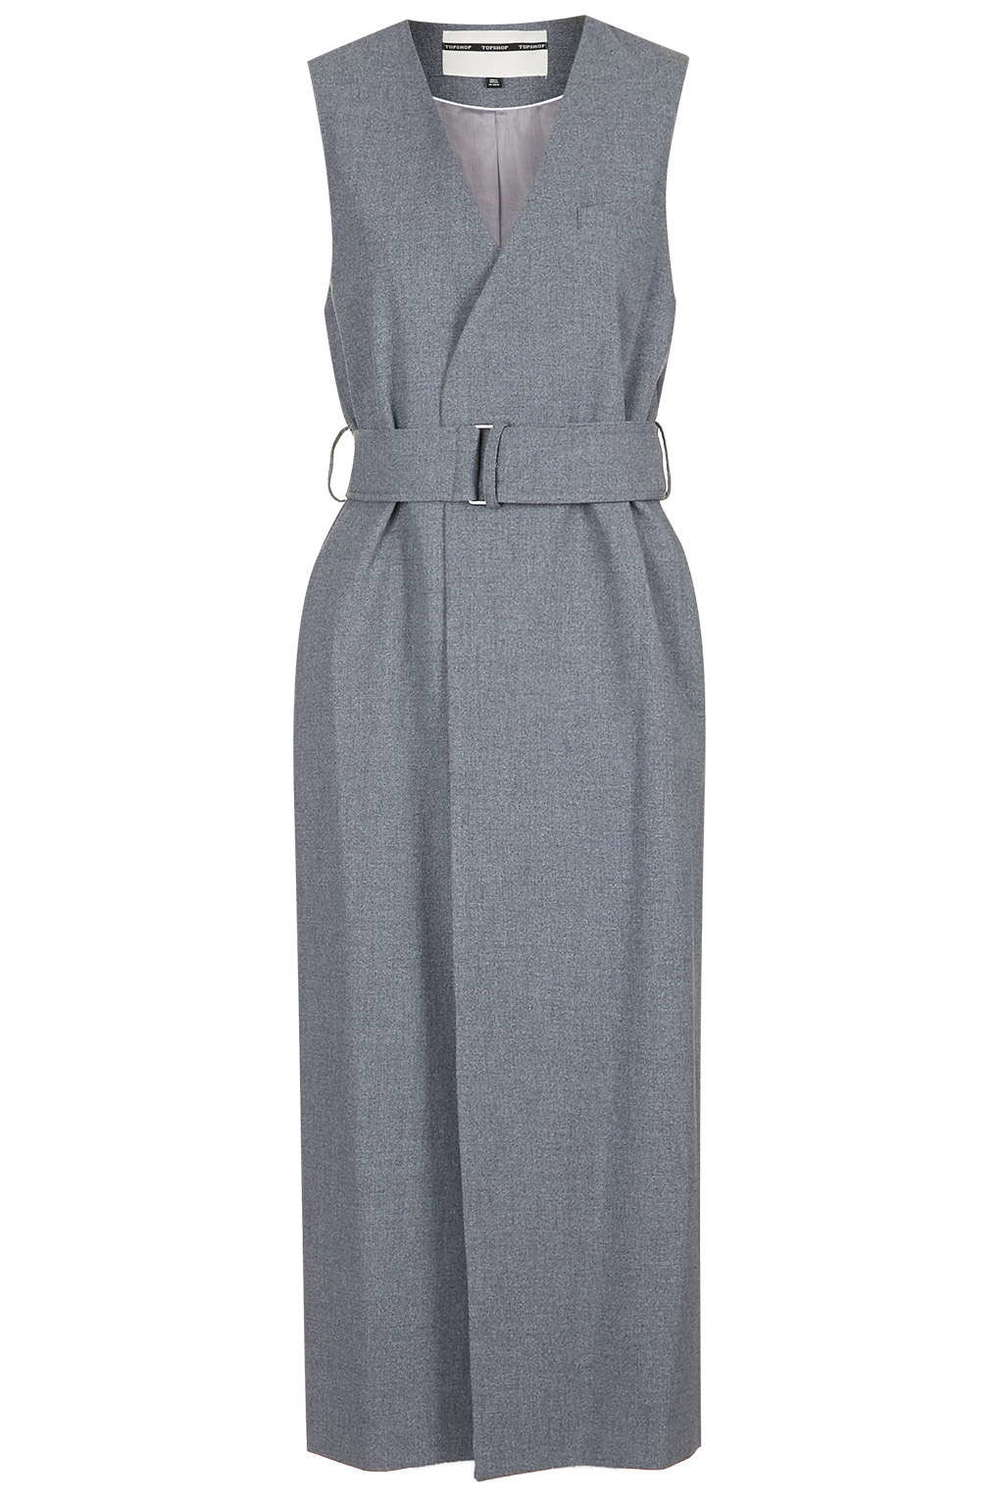 Topshop Sleeveless Vest